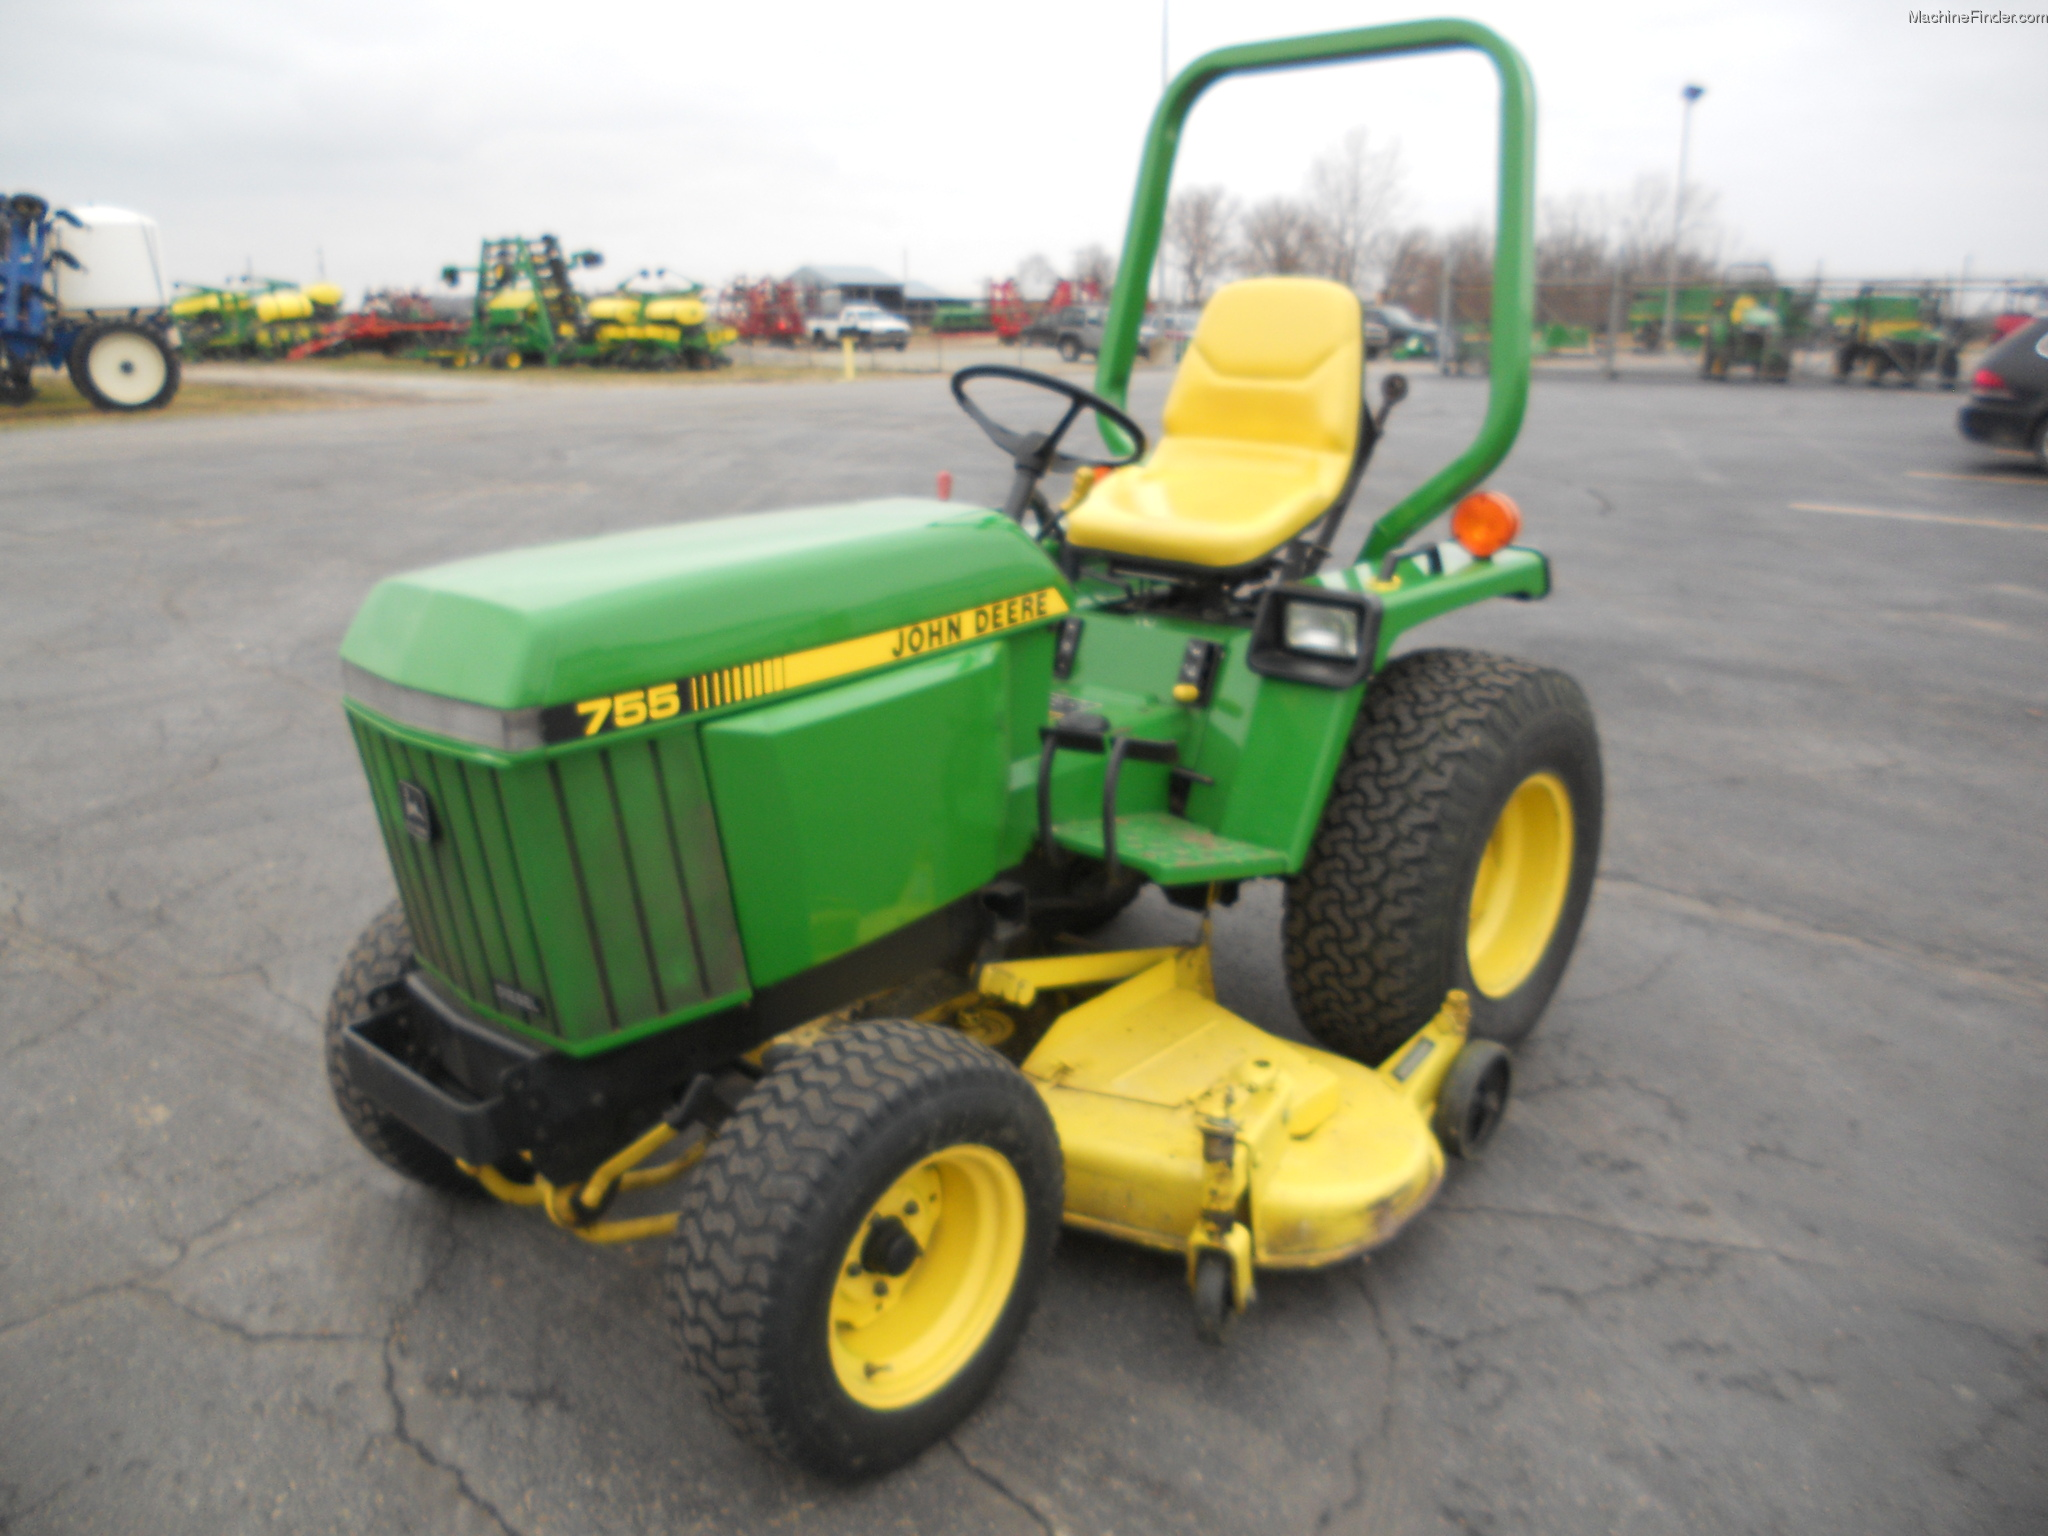 1987 john deere 755 tractors compact 1 40hp john. Black Bedroom Furniture Sets. Home Design Ideas